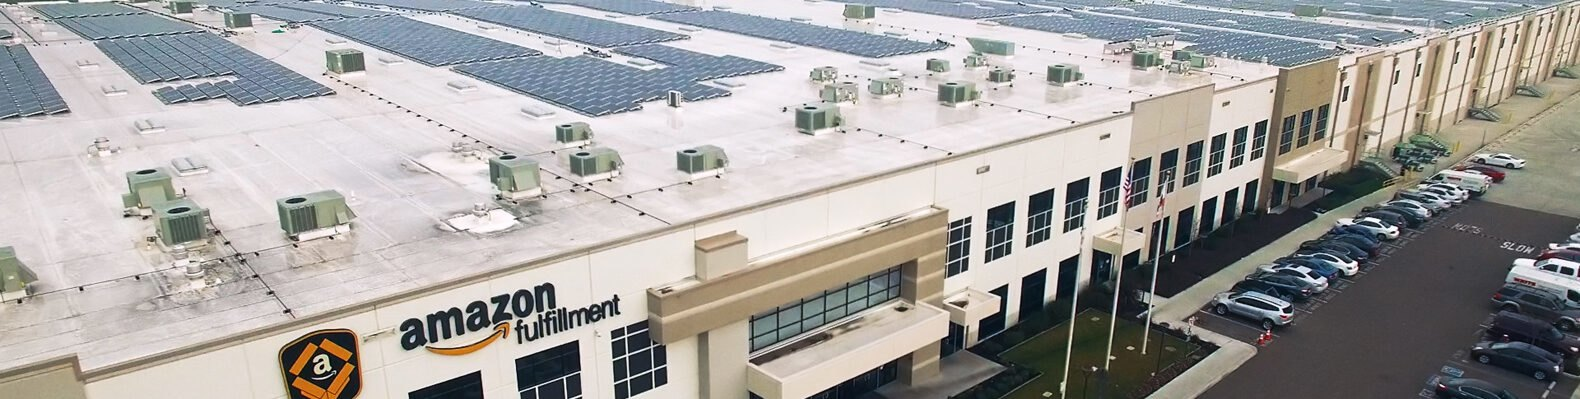 Amazon fulfillment warehouse building topped with solar panels